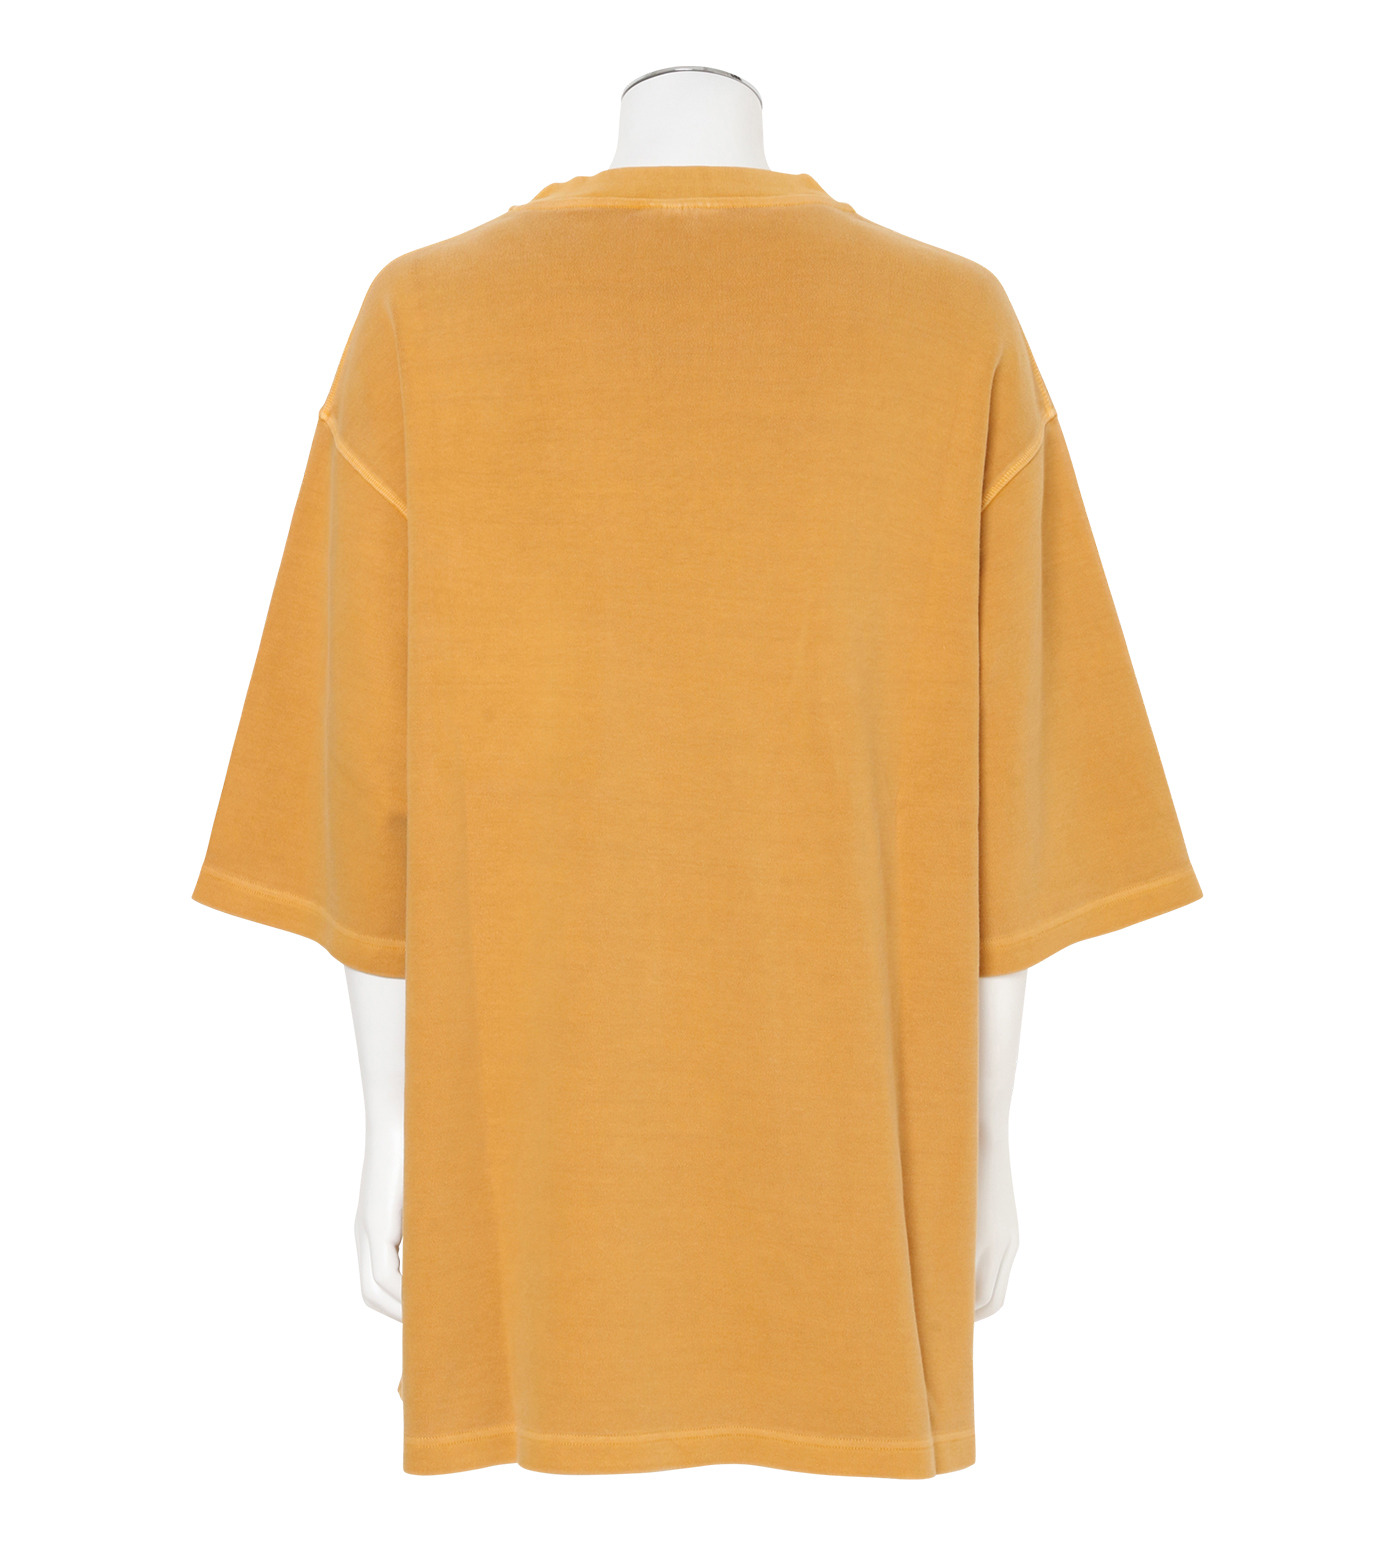 YEEZY(イージー)のRUGBY KNIT TEE-YELLOW(カットソー/cut and sewn)-KW3M106-105-32 拡大詳細画像2